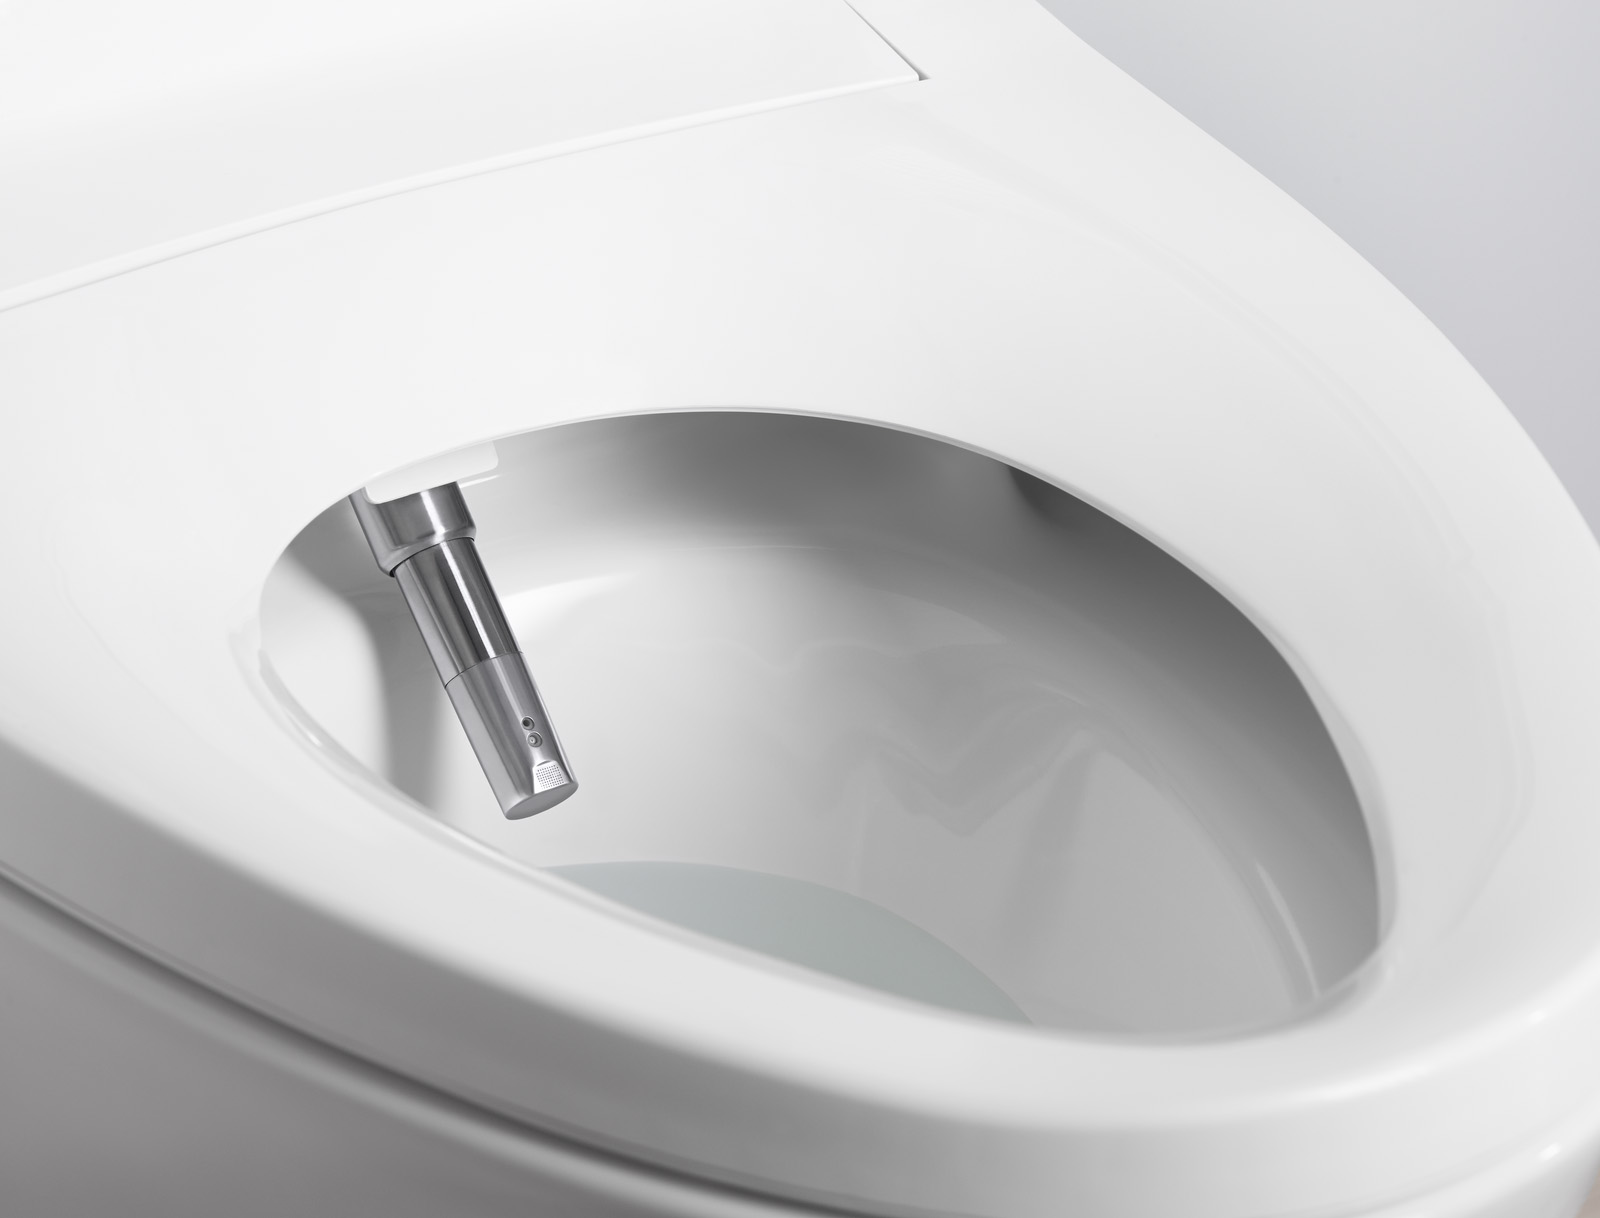 Americans Are Ready To Update Their Toilet Experience To